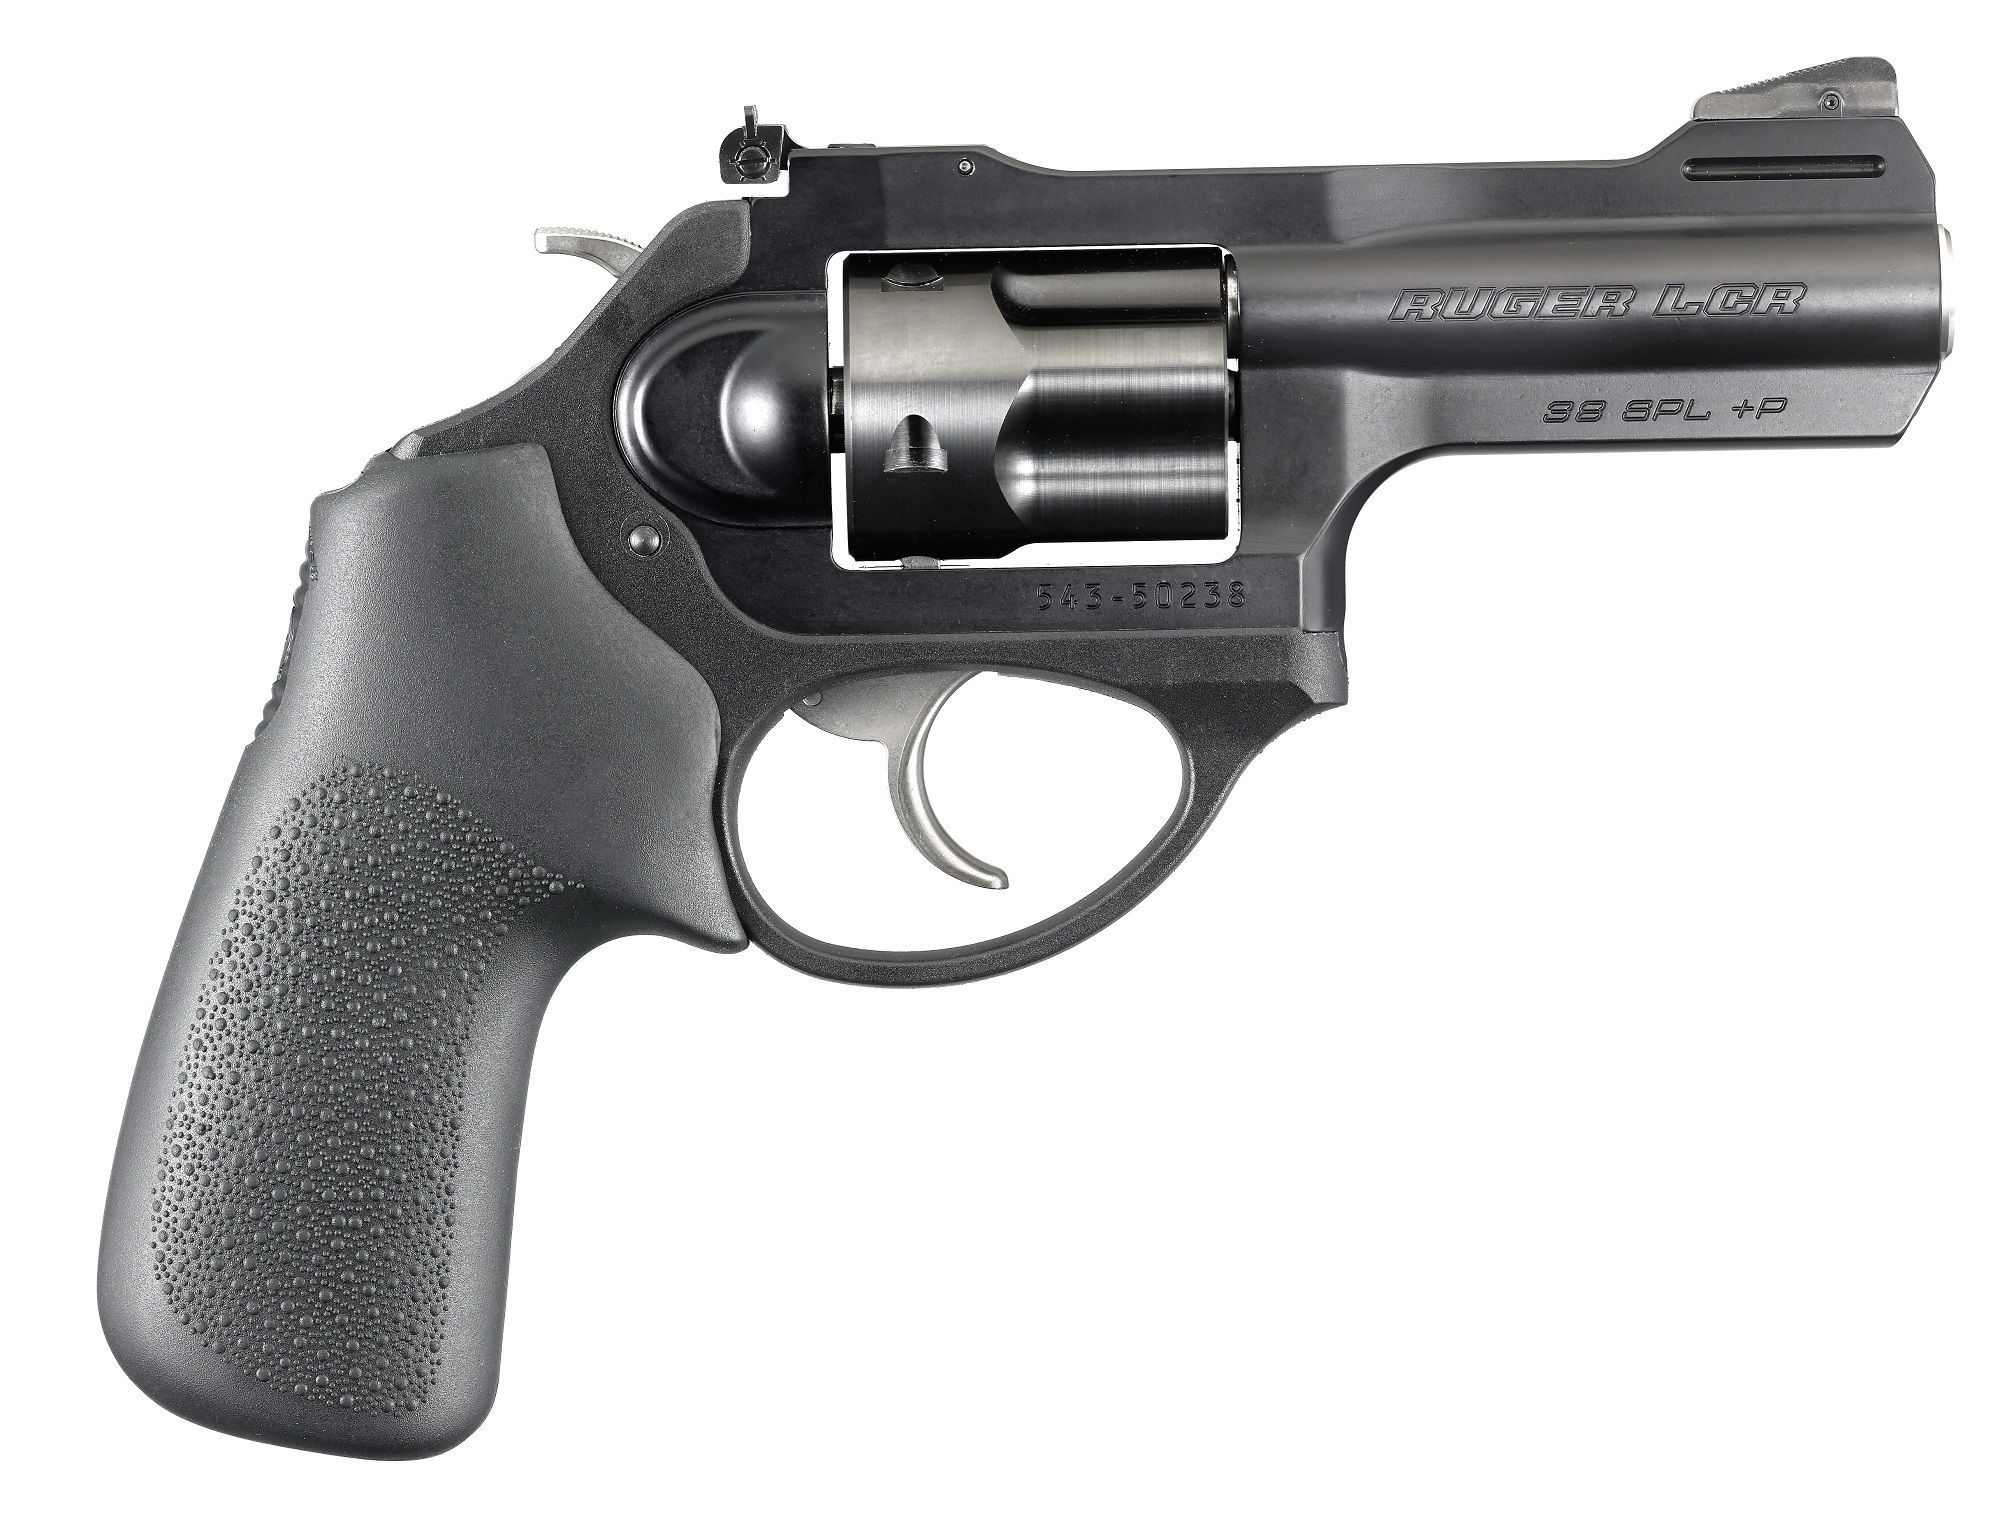 Lcr In Hand : Ruger lcrx double action revolver with inch barrel